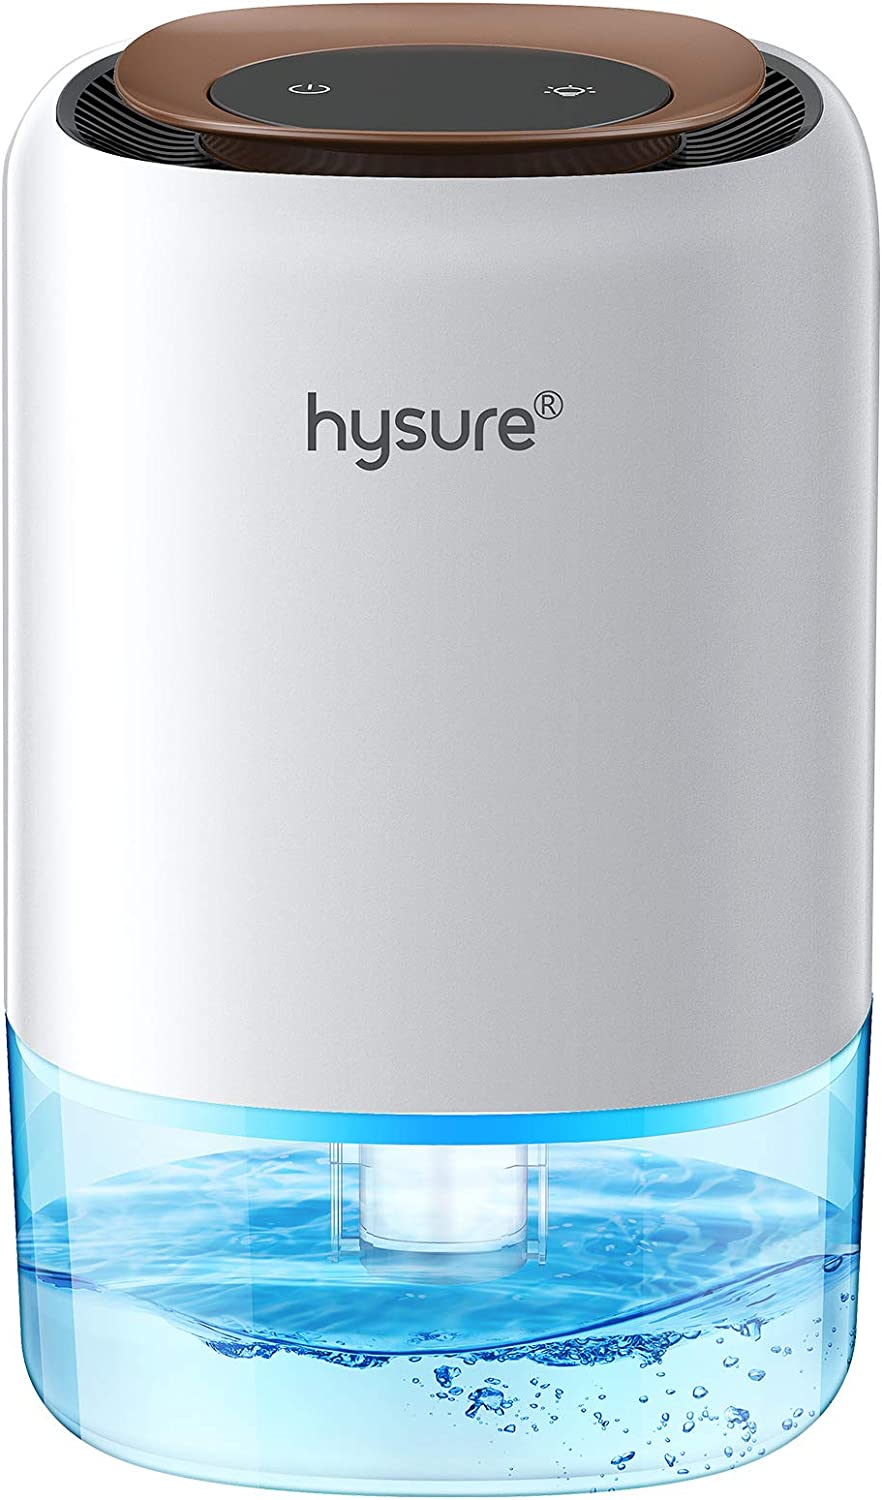 Hysure Dehumidifier 1400ml In stock 49oz for 2200 Sq Max 80% OFF Ft Feet Cubic 220